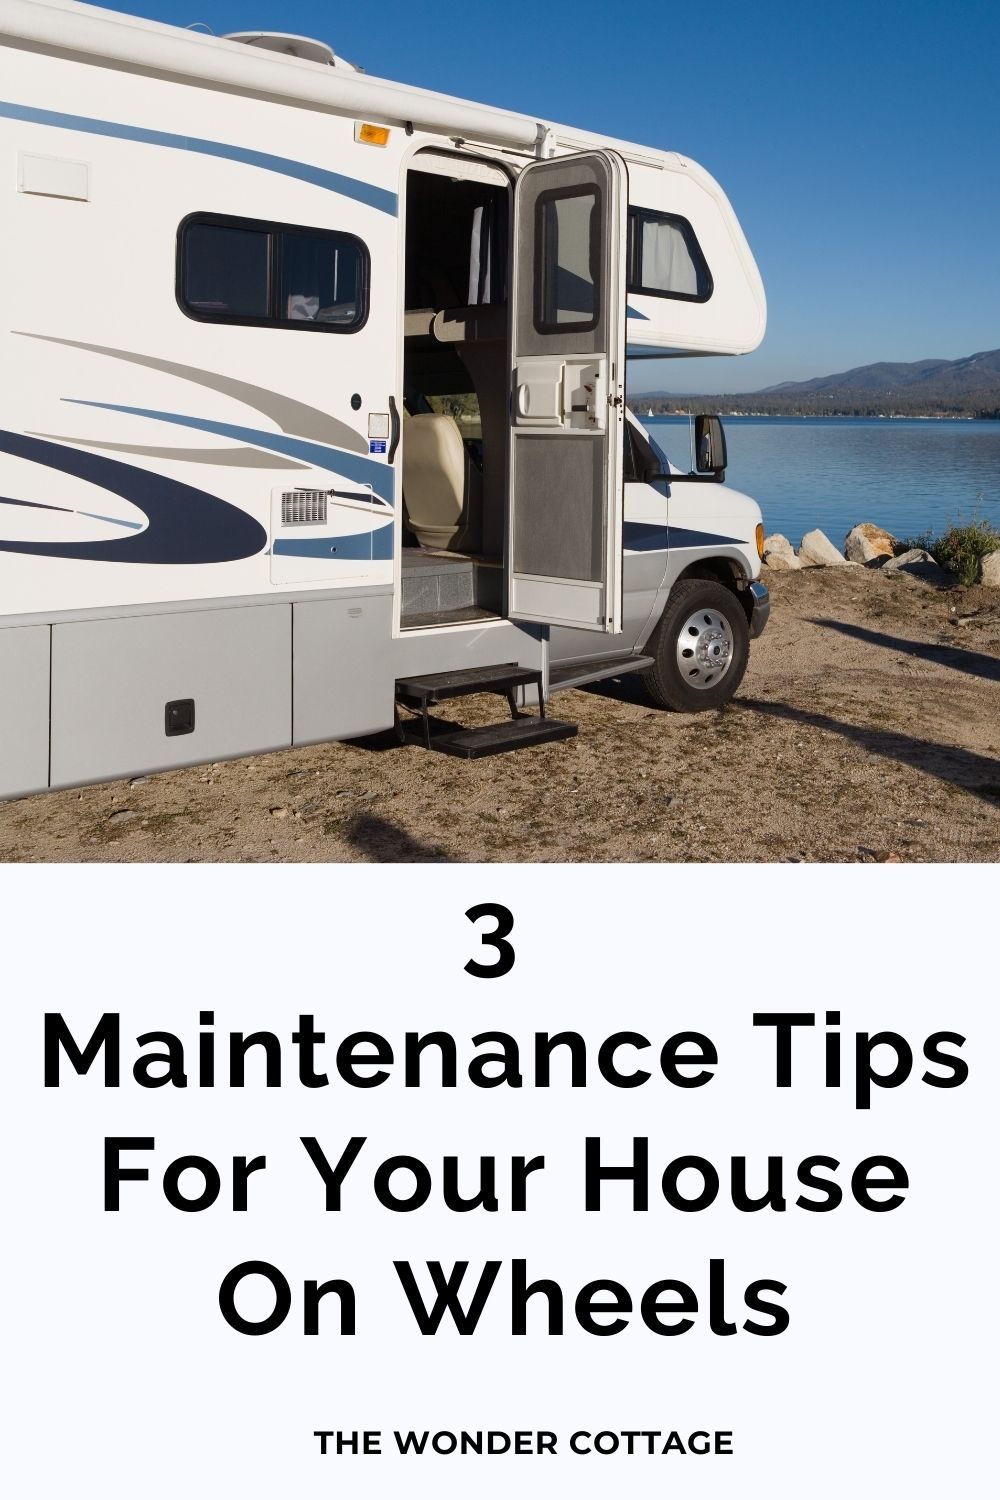 3 Maintenance tips for your house on wheels